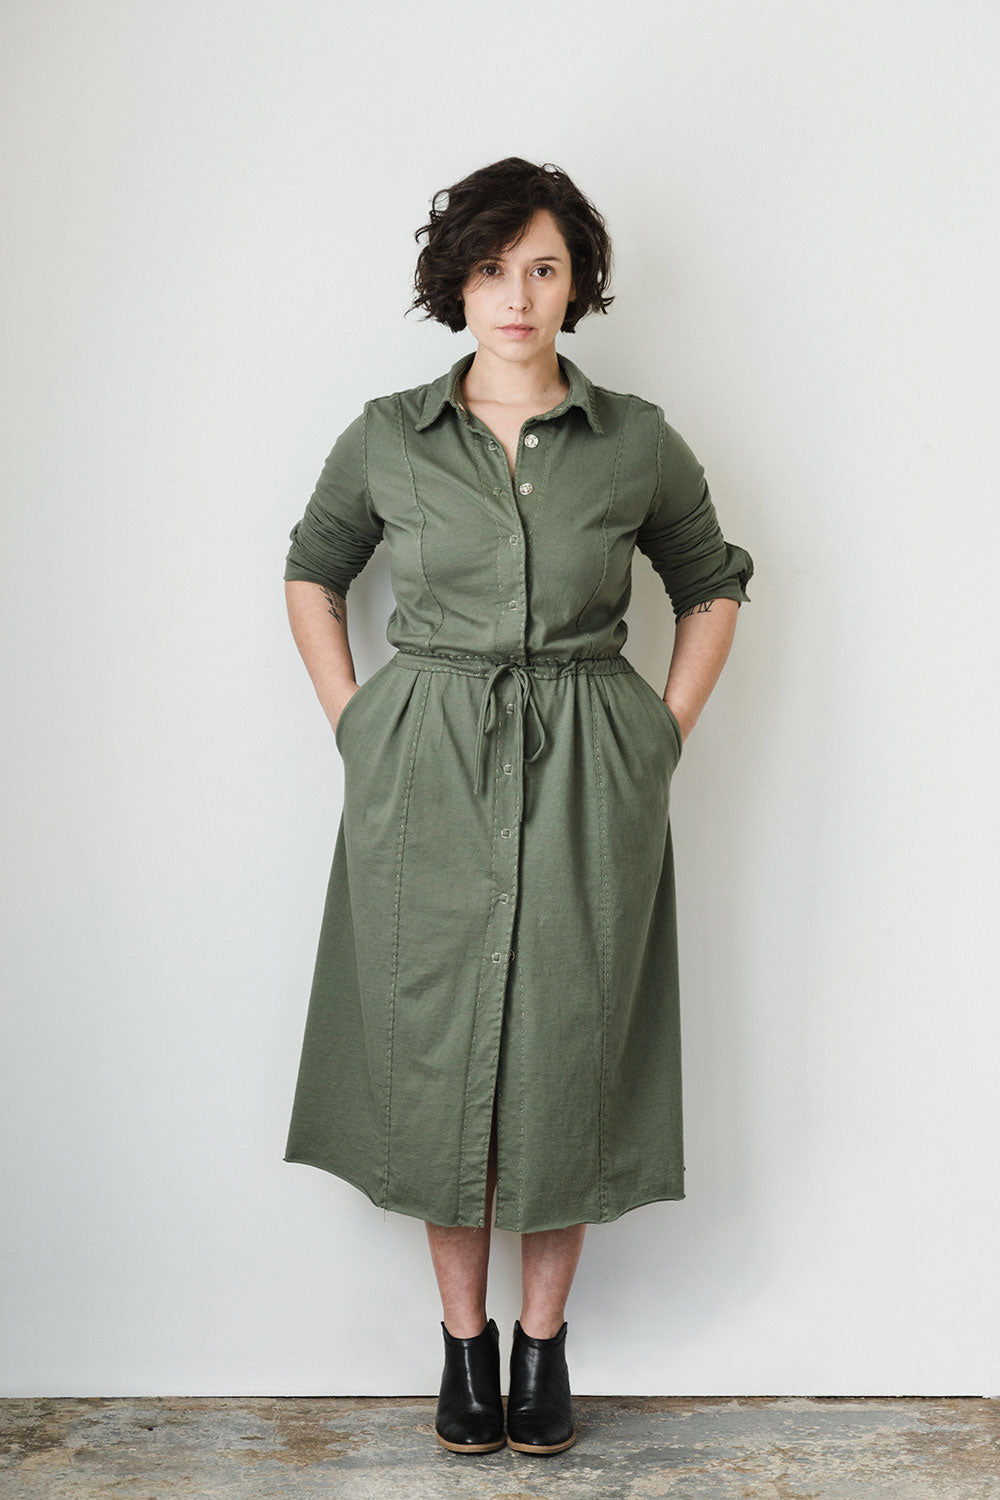 The School of Making The Jumpsuit Pattern Women's DIY Clothing Pattern for Hand-Sewn Jumpsuit and Dress